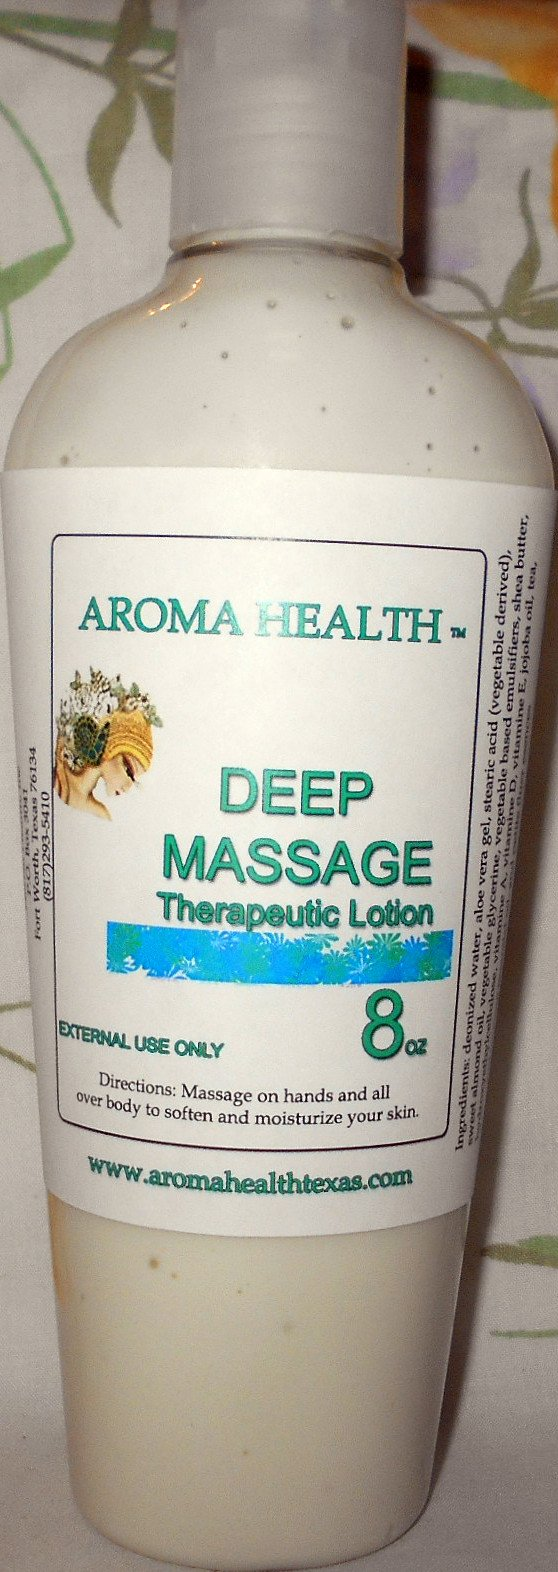 Deep Massage - Aroma Health Texas